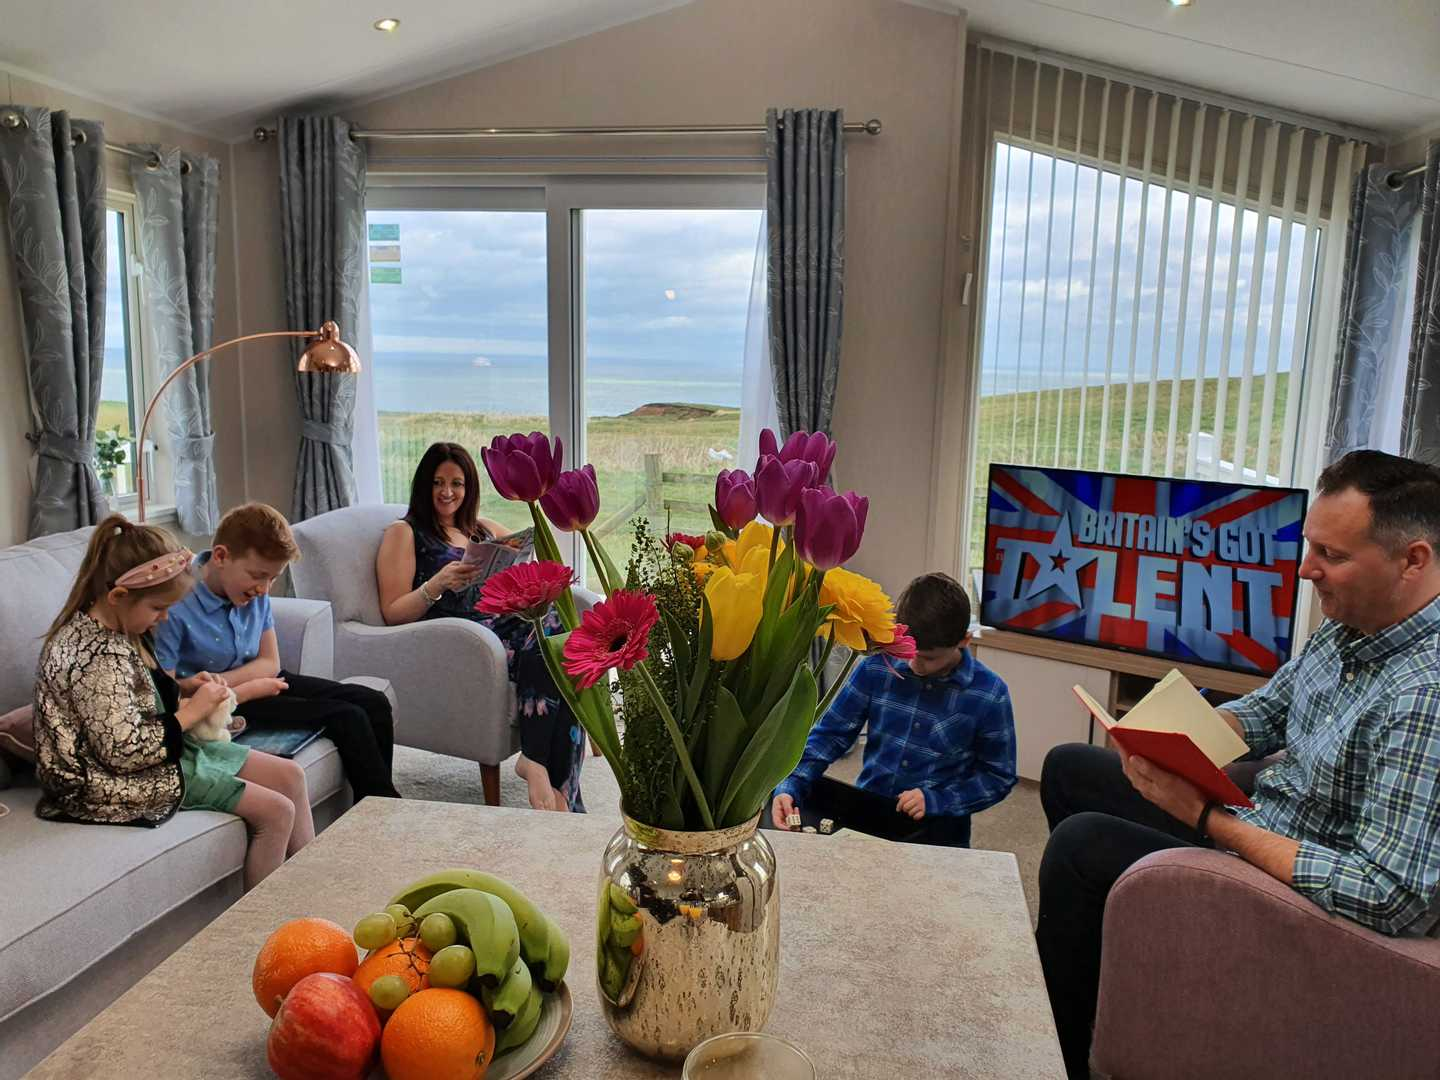 Family sat in lounge of their holiday home watching Britain's Got Talent